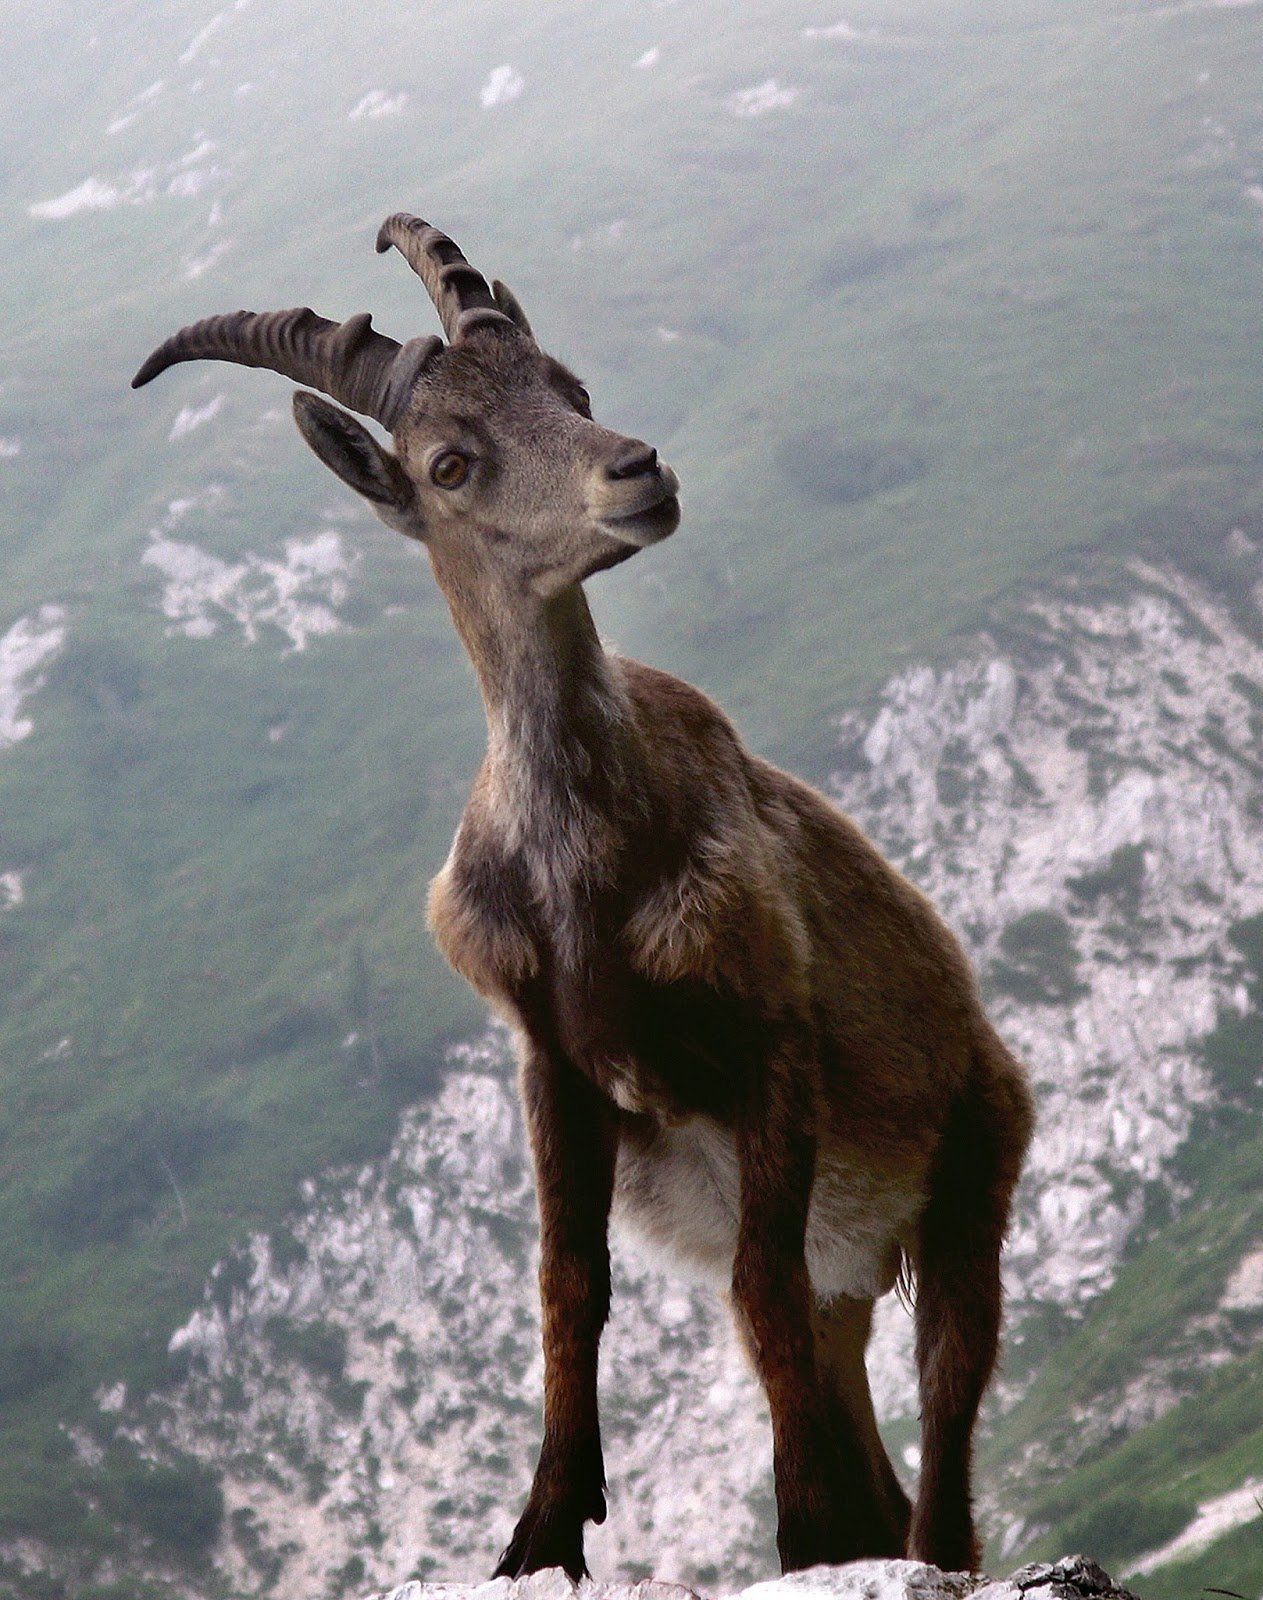 Picture of a capricorn up high on a mountain.